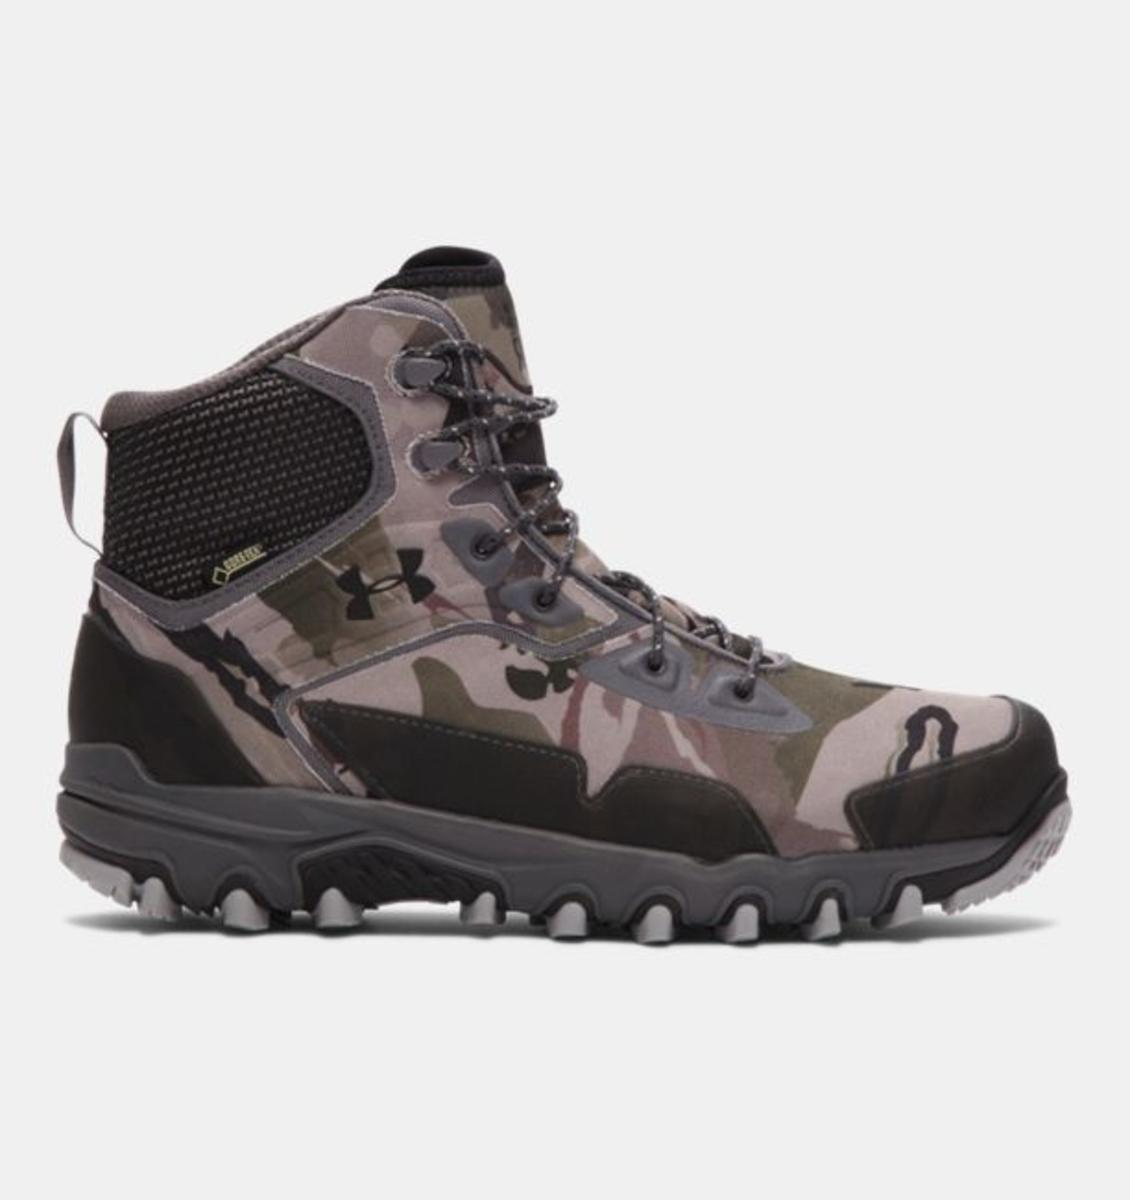 9bfbc20b544 Under armour men ua ridge reaper extreme hunting boots the warming store  png 1130x1200 Camo under